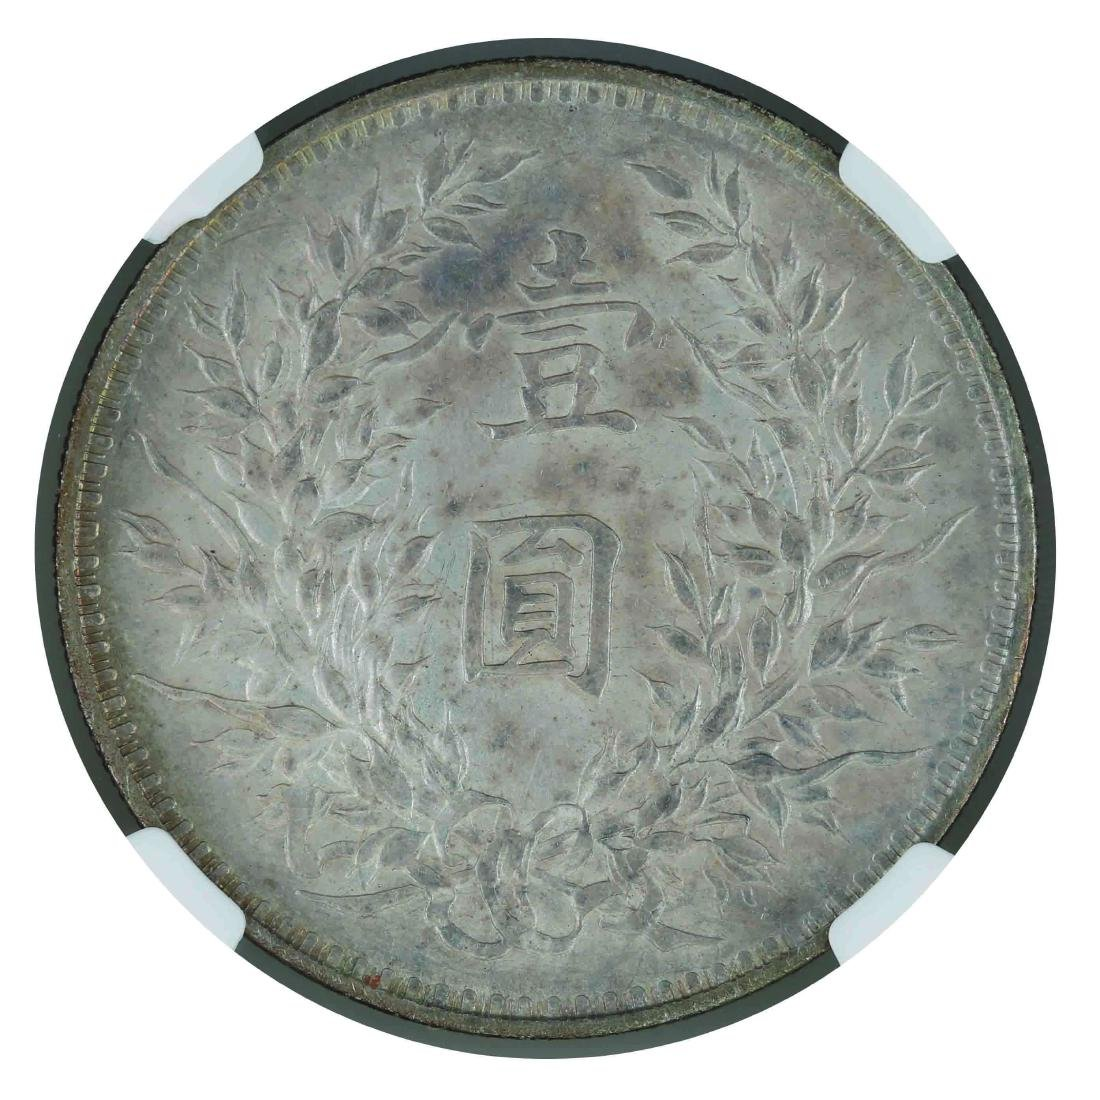 China / Republic 1914, (Yrs 3) Yuan Shi Kai (Y-329), 1 - 2